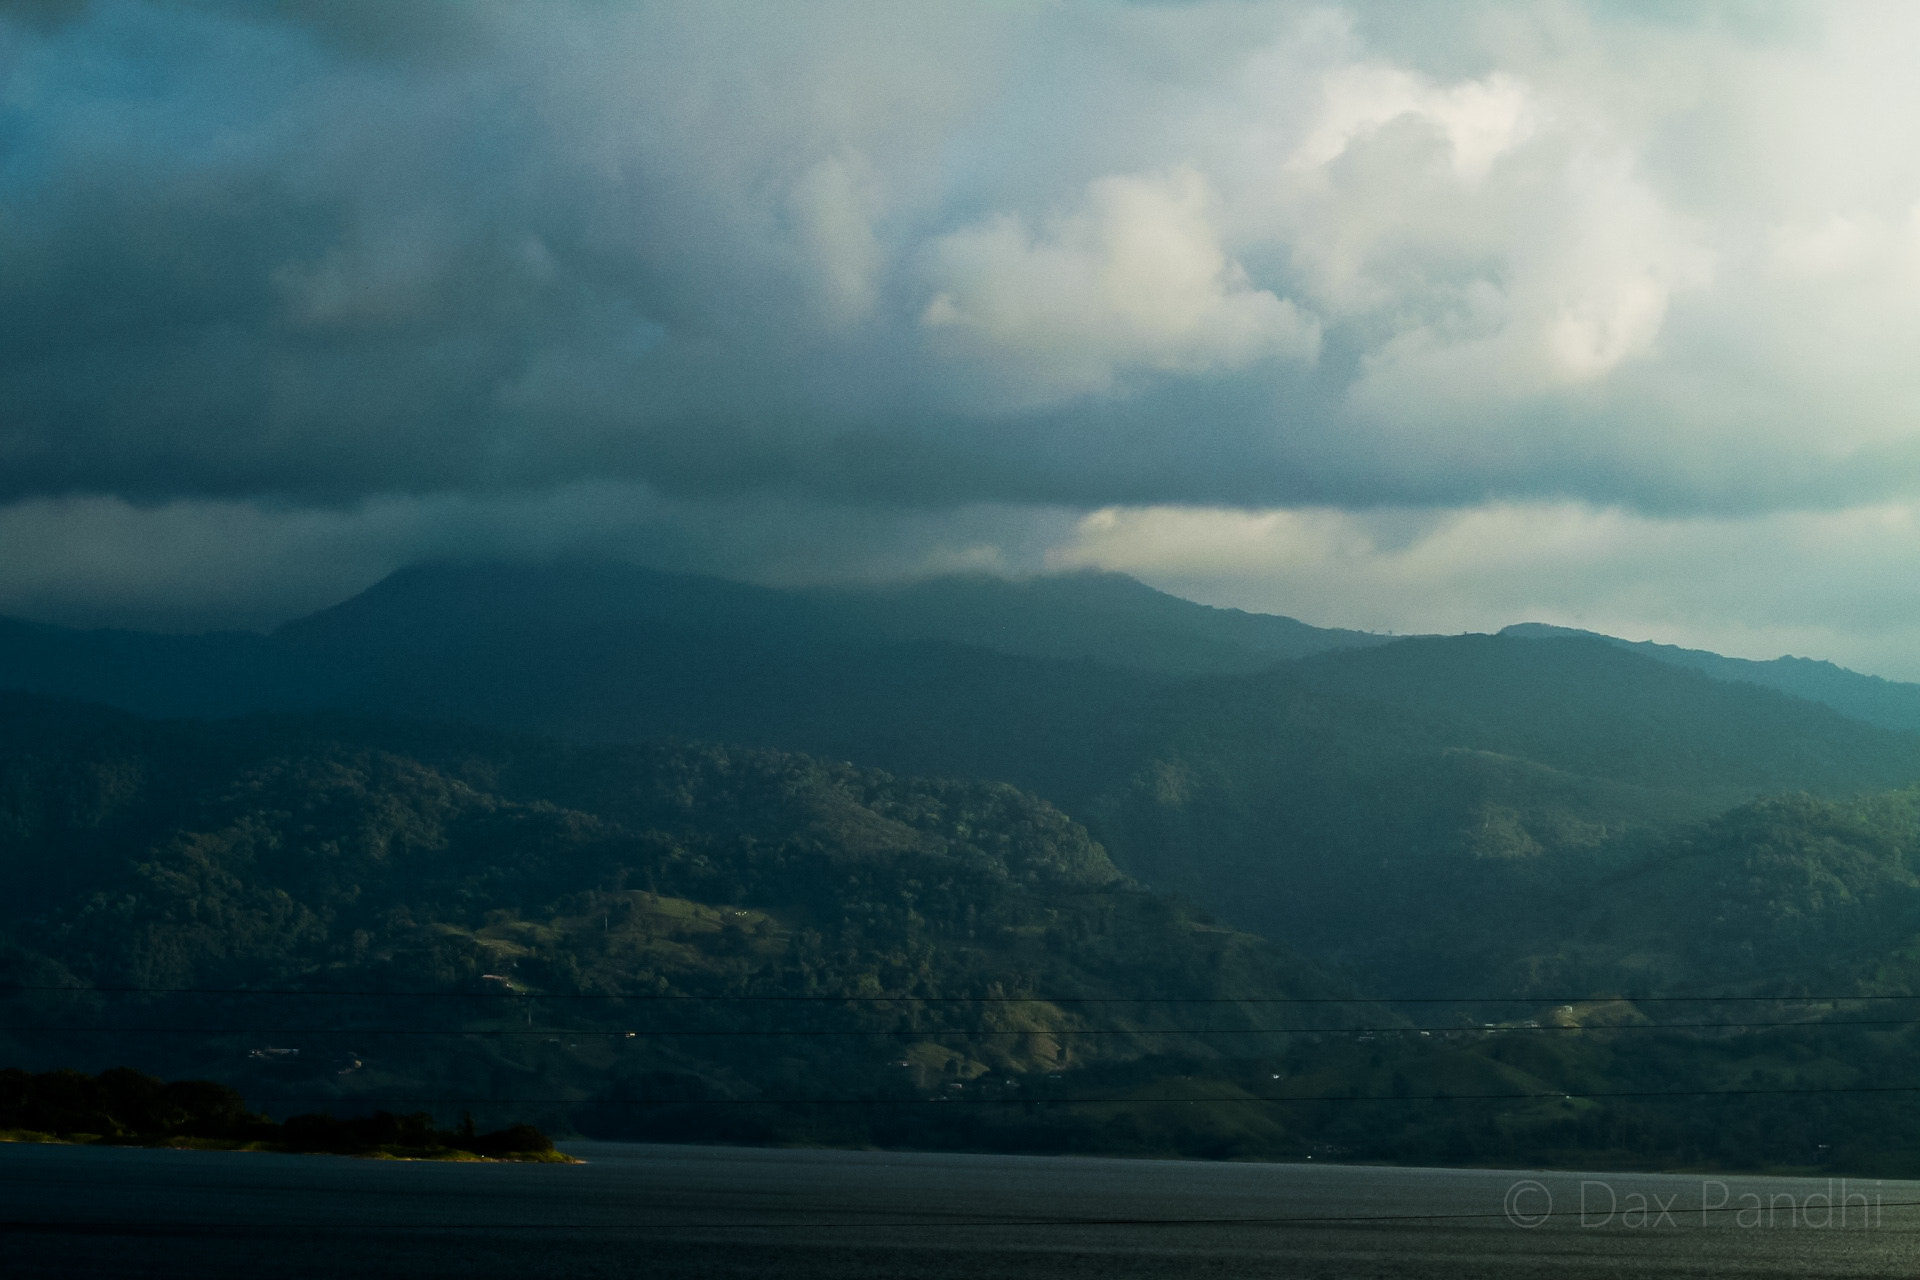 Photograph Low clouds over Monte Verde by Dax Pandhi on 500px